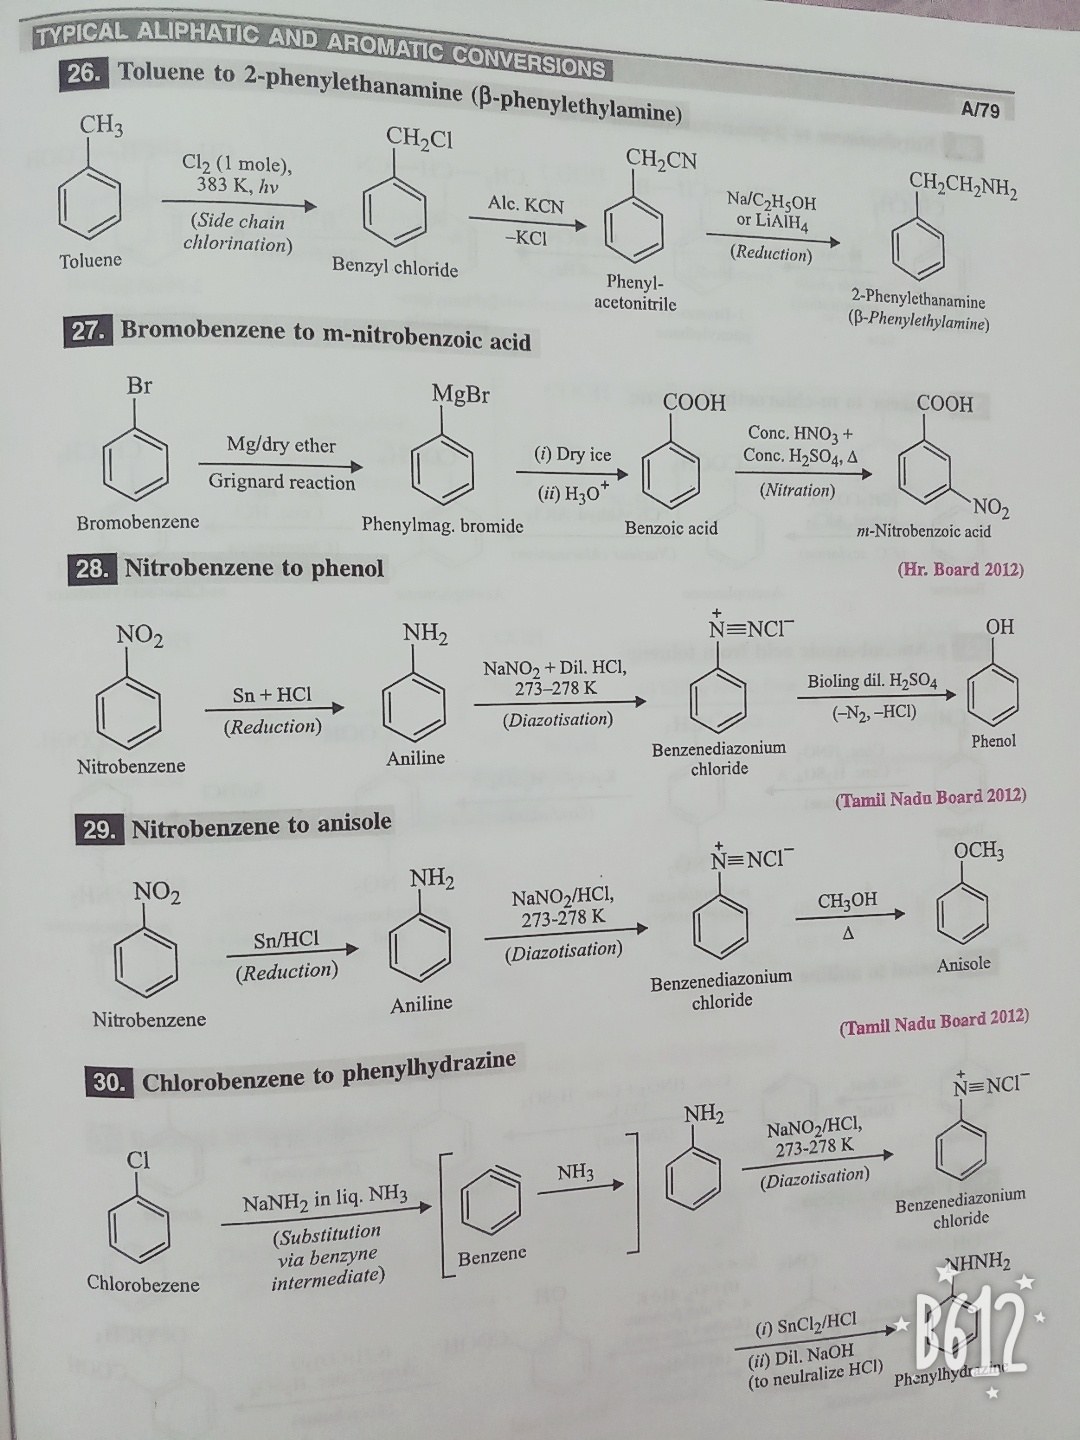 Is there any way in which I can study organic chemistry effectively